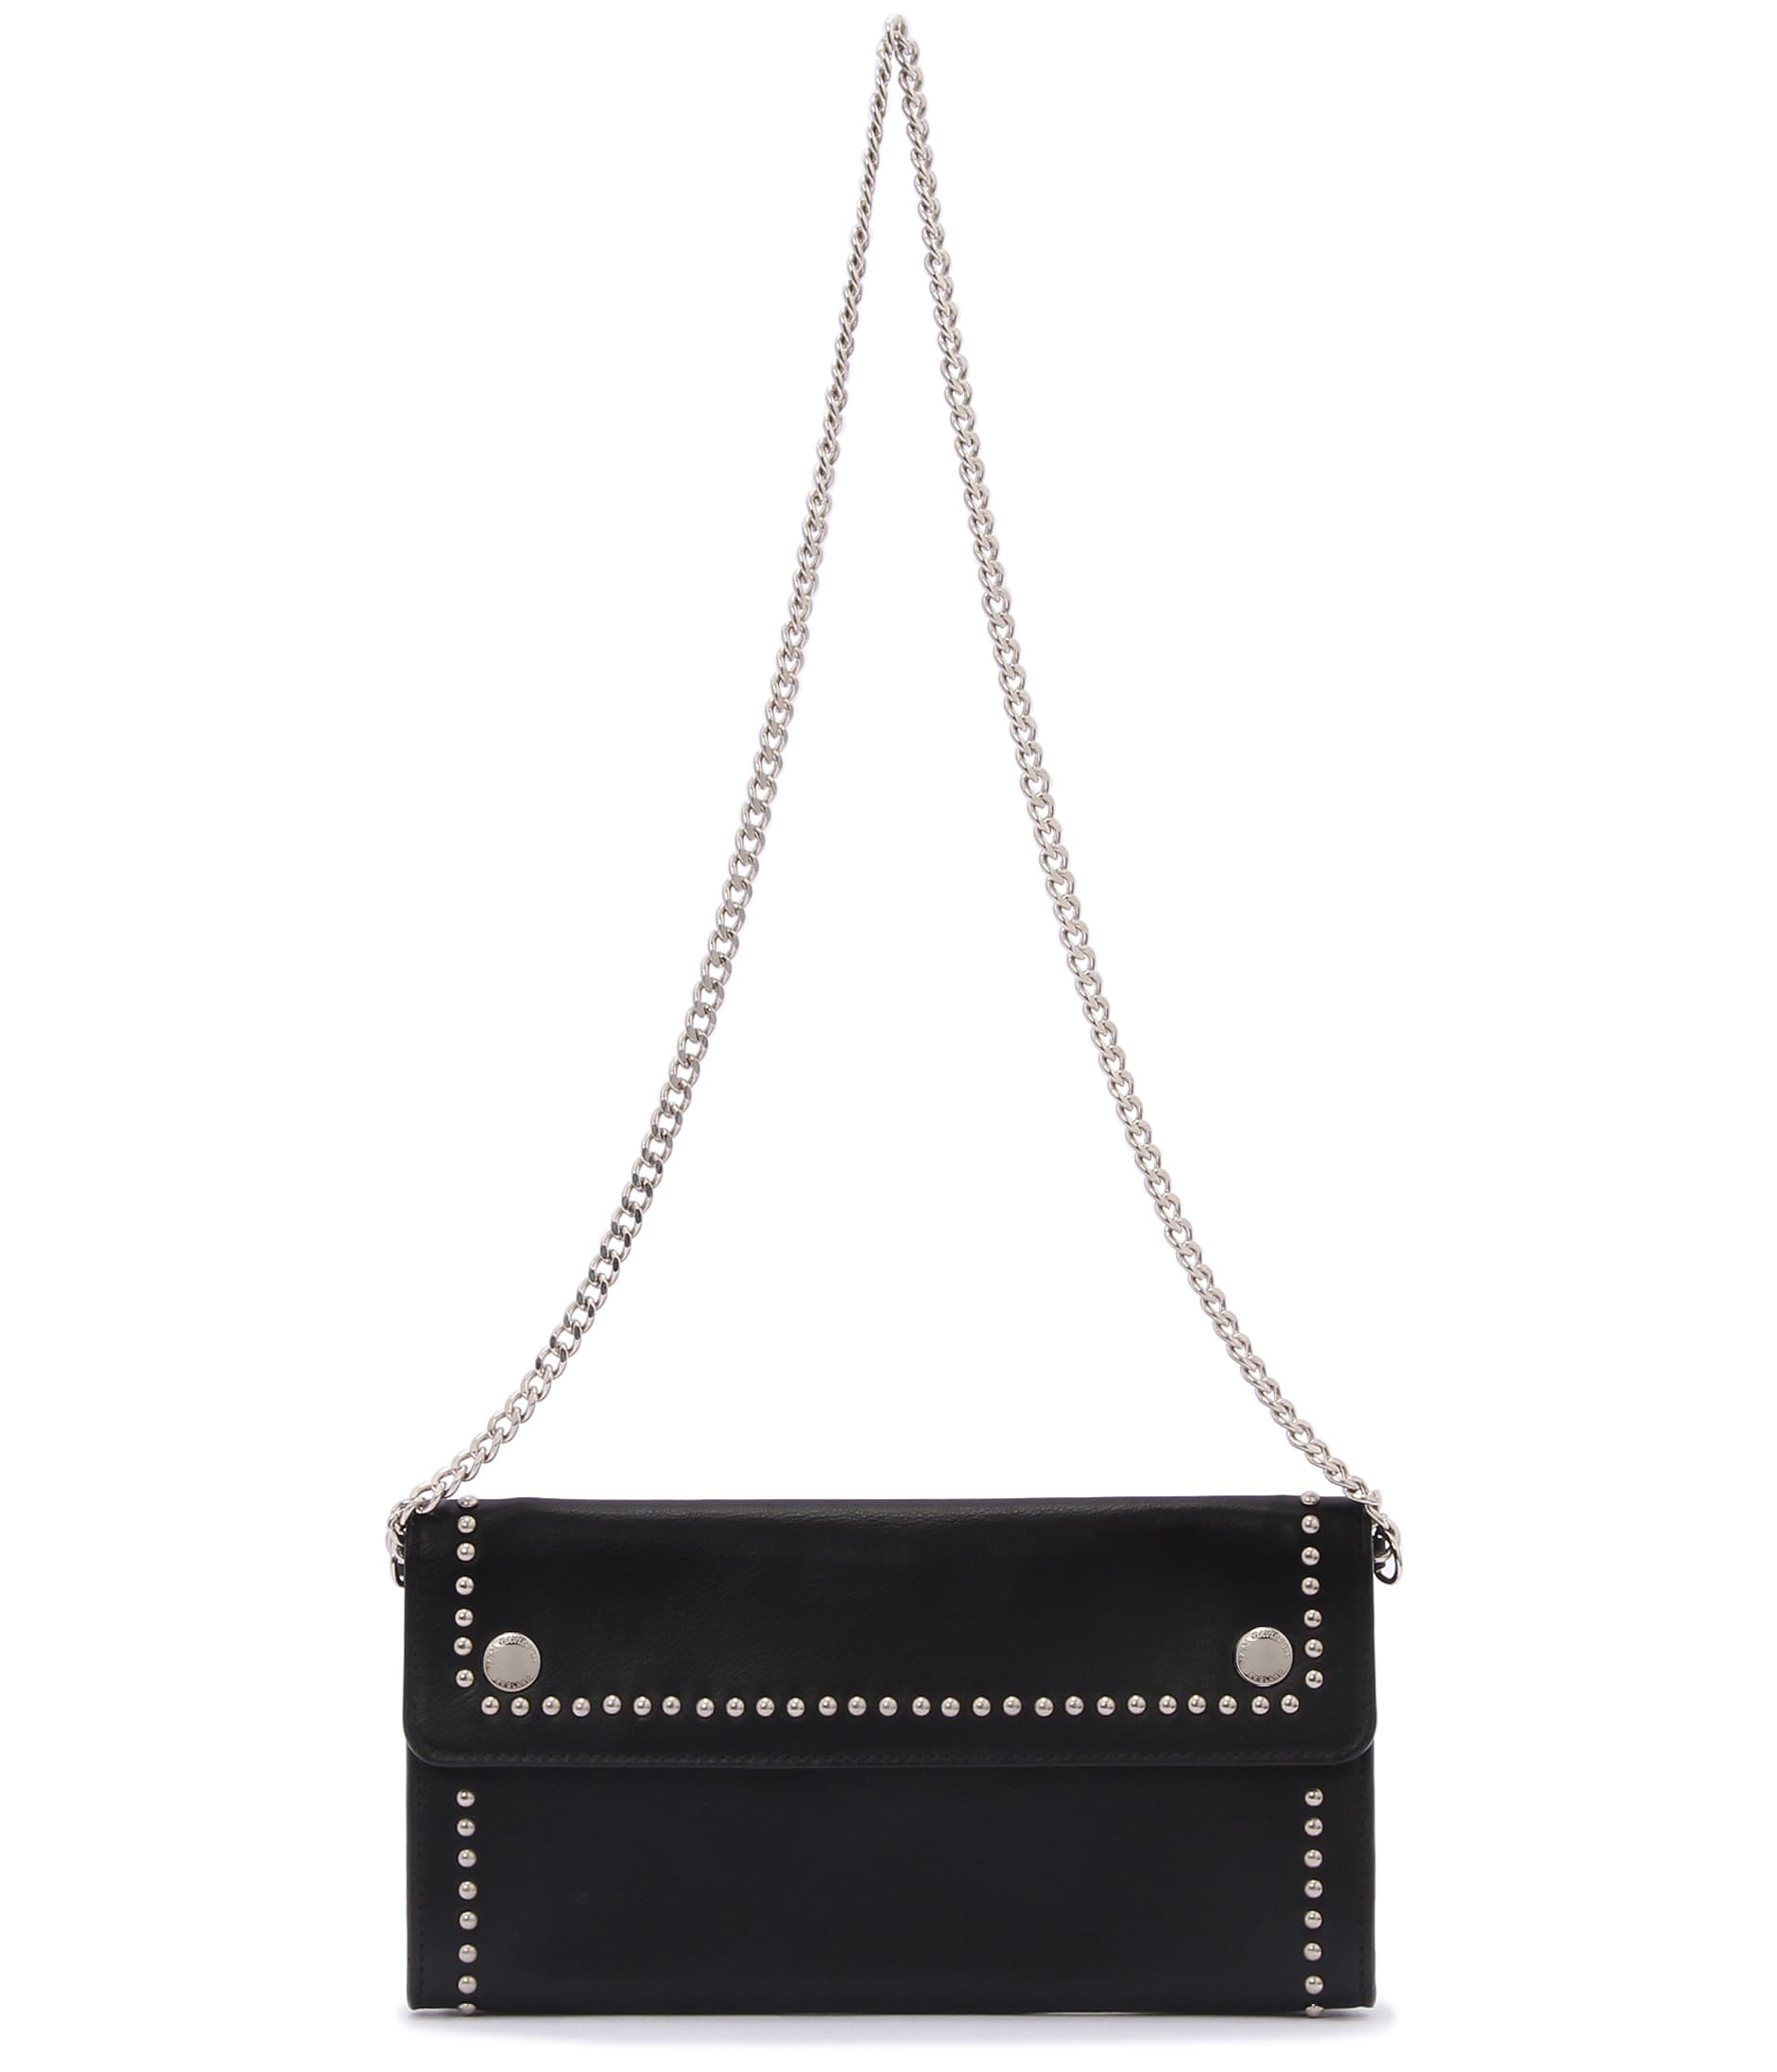 TRAVEL POUCH WITH STUDS 詳細画像 BLACK 6